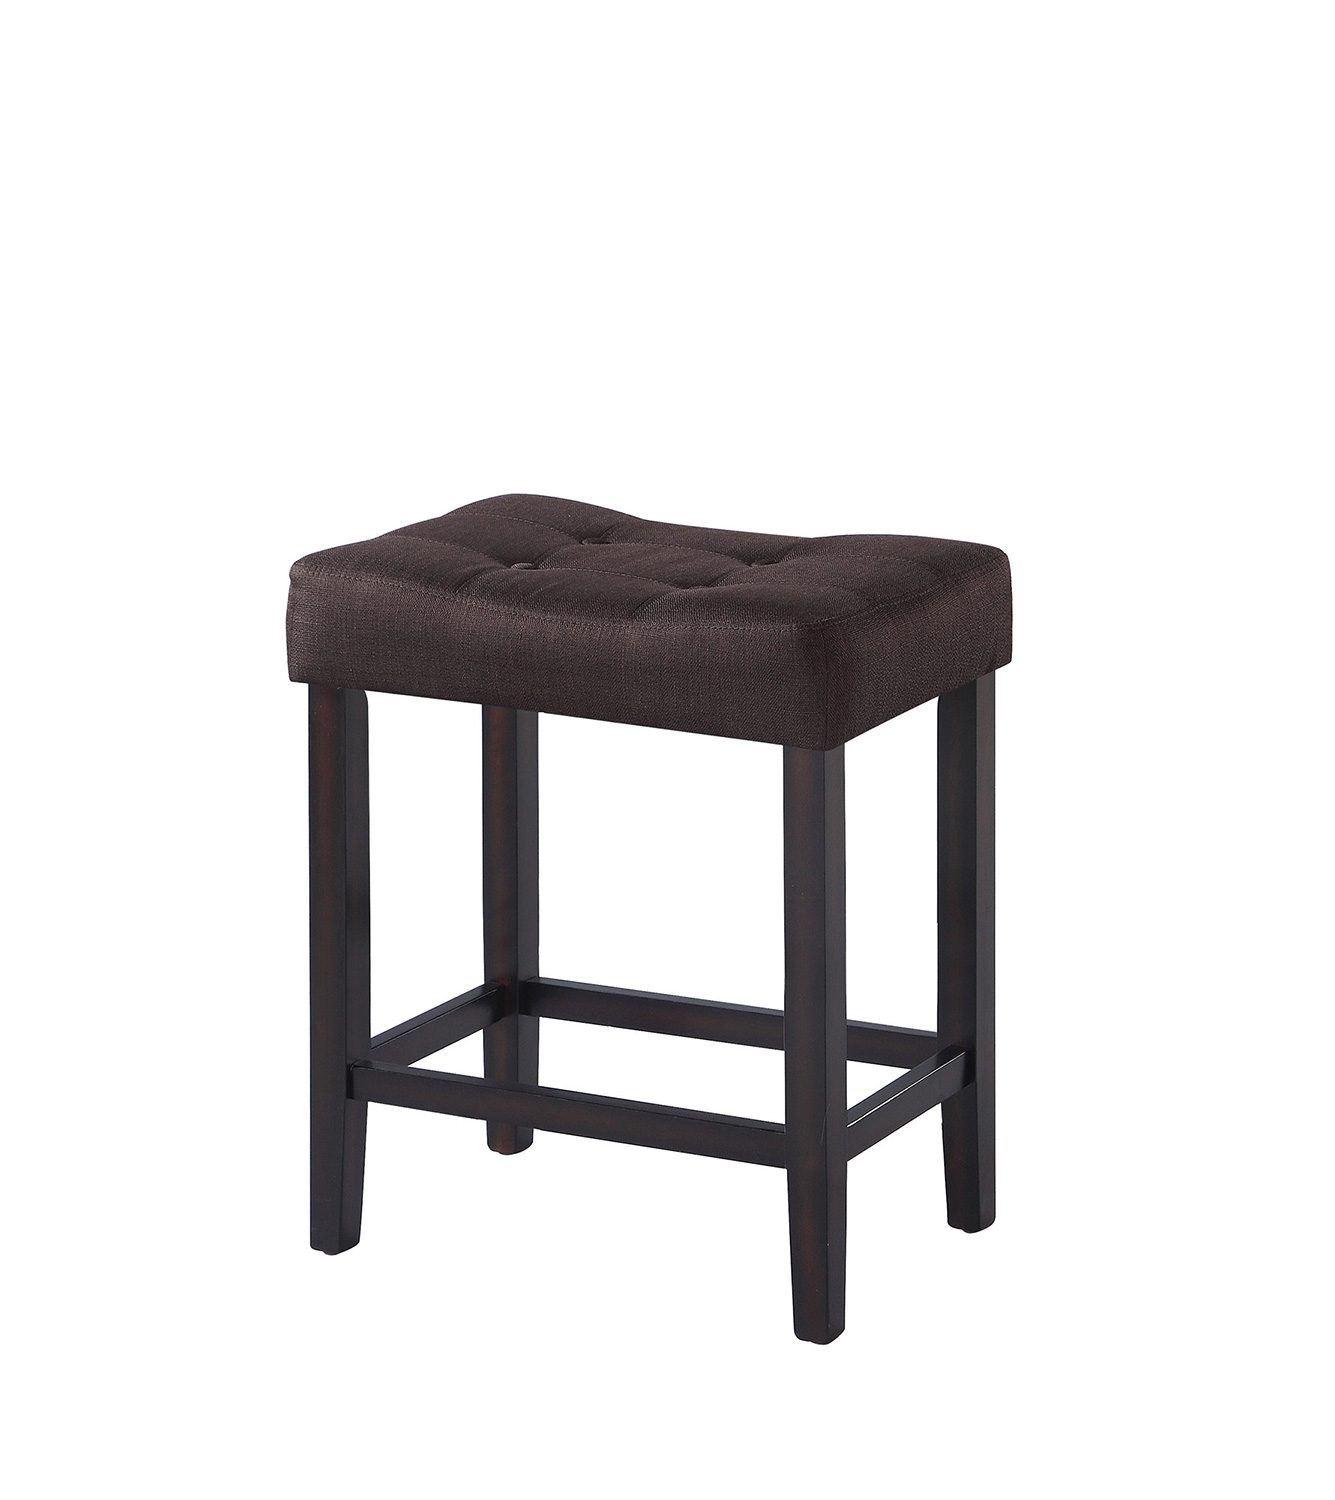 Coaster 182017 Counter Height Stool - Brown Fabric